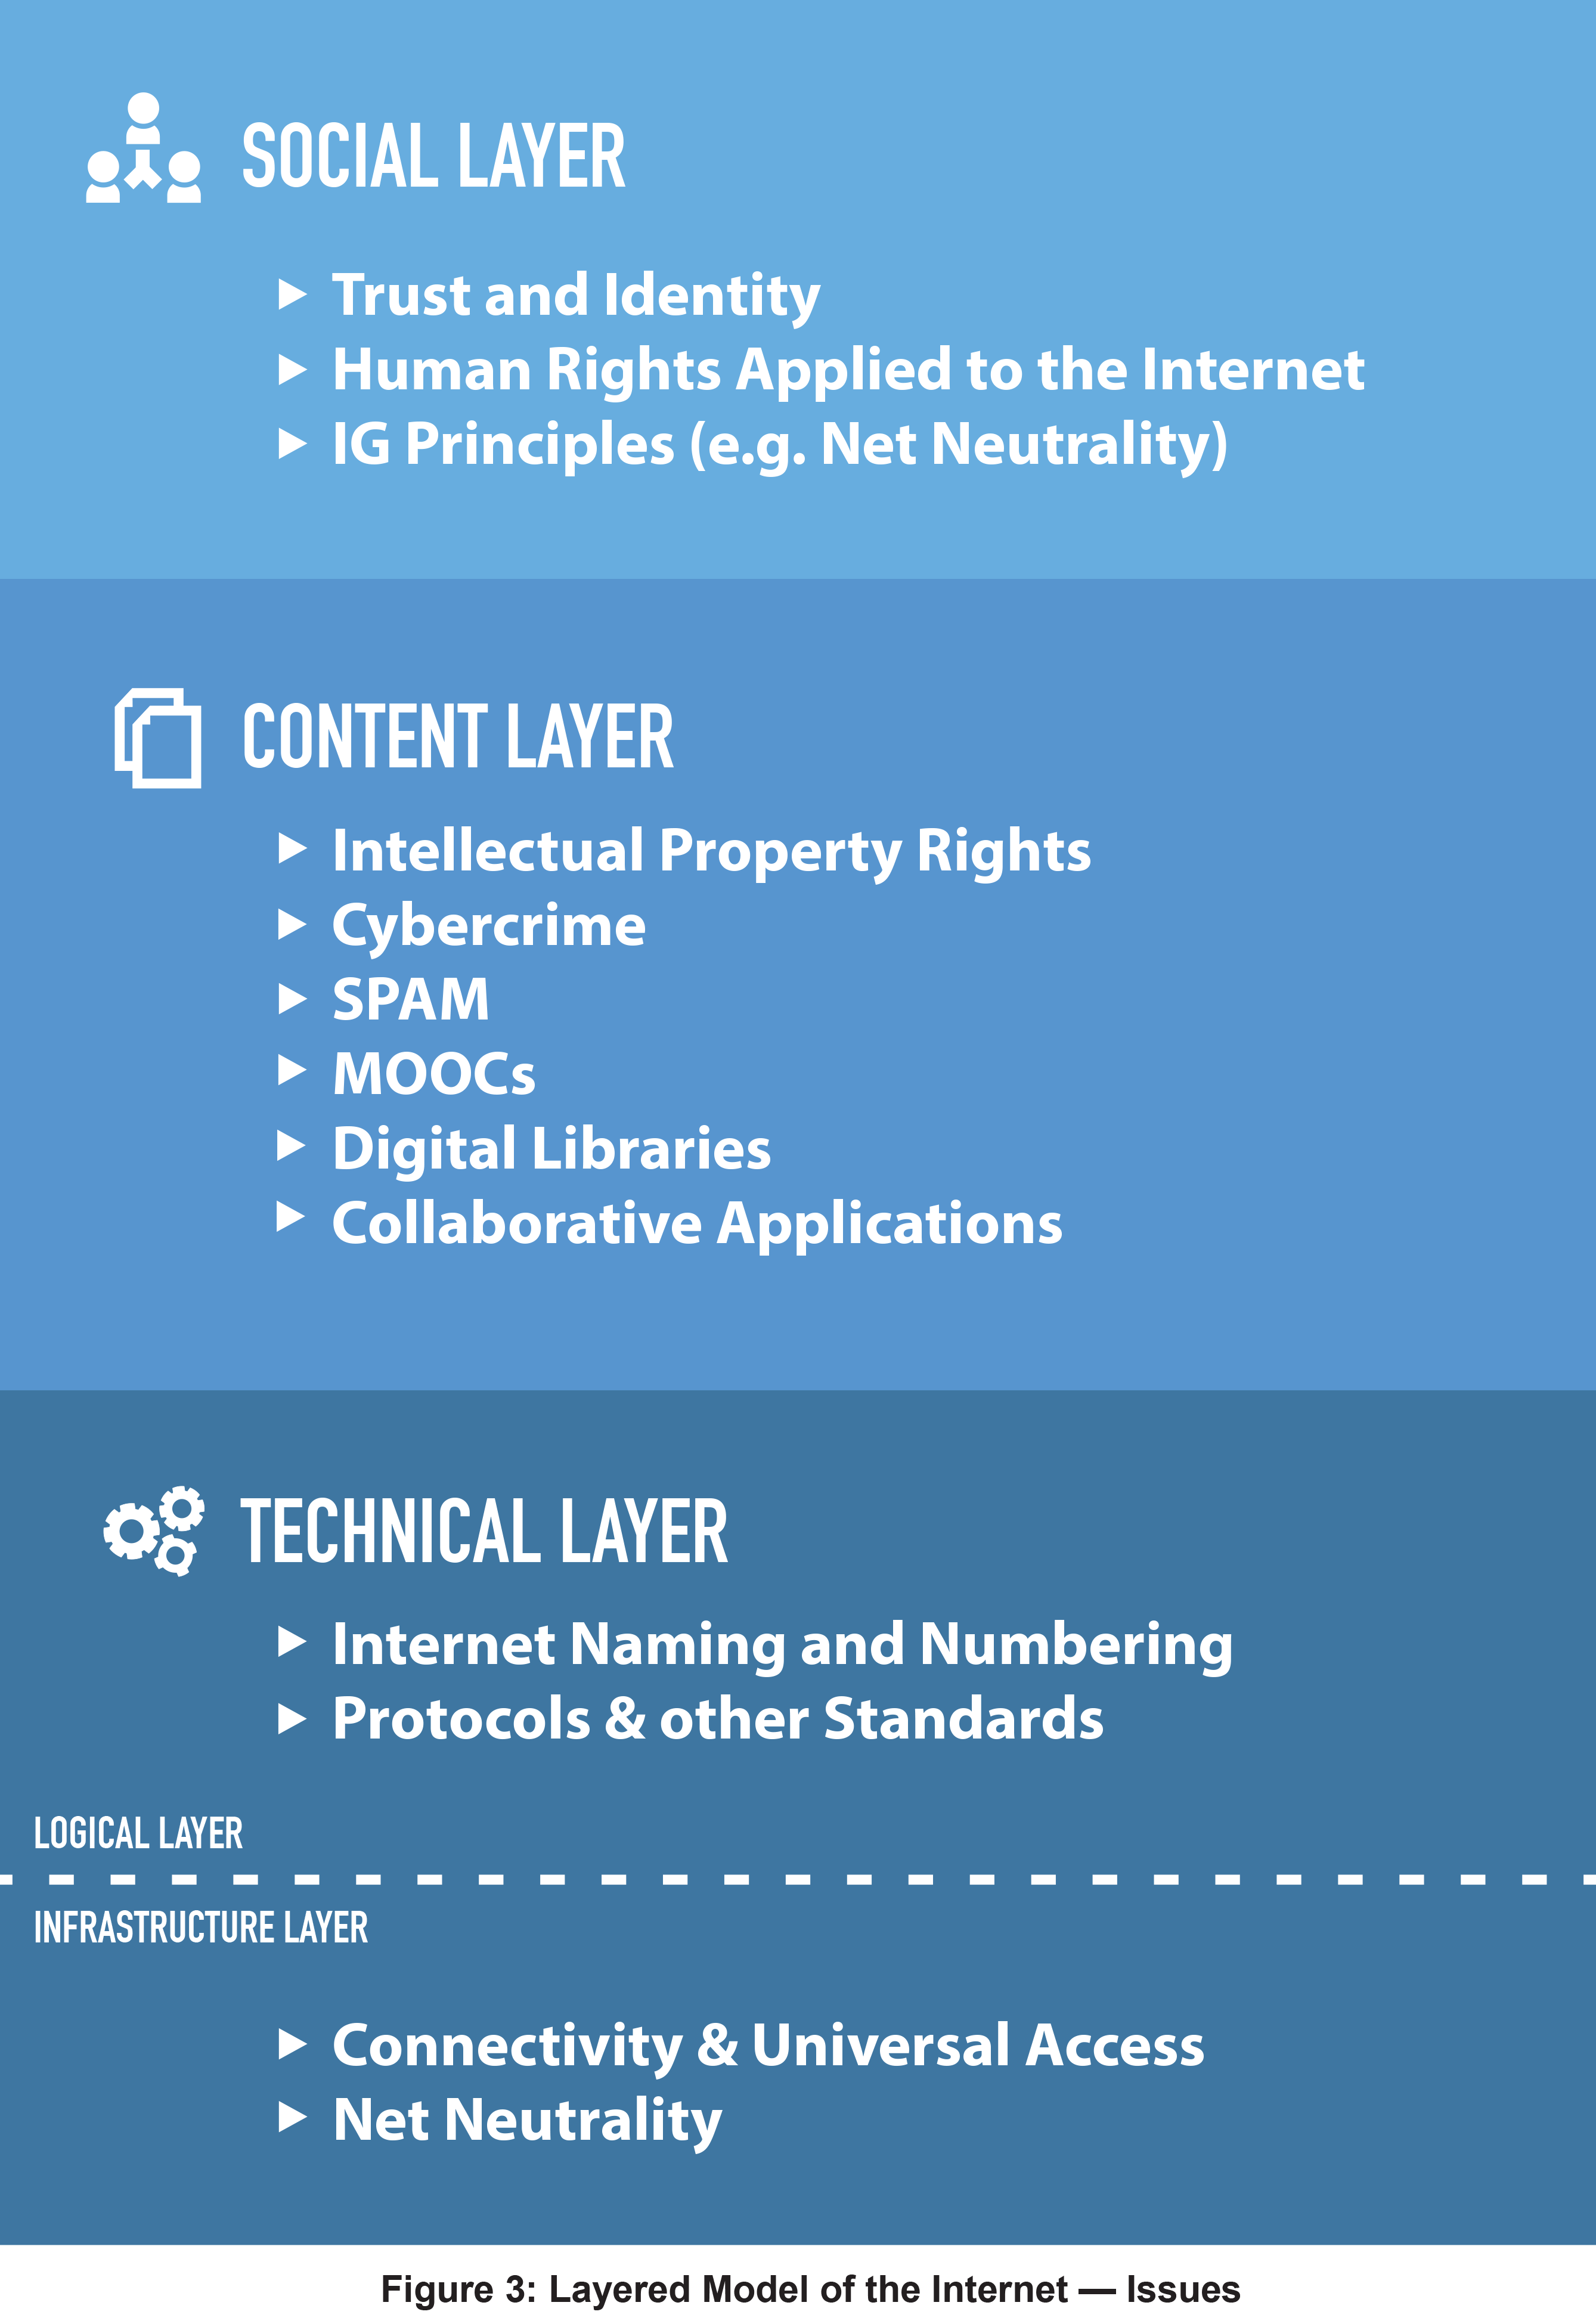 Figure 3: Layered Model of the Internet - Issues